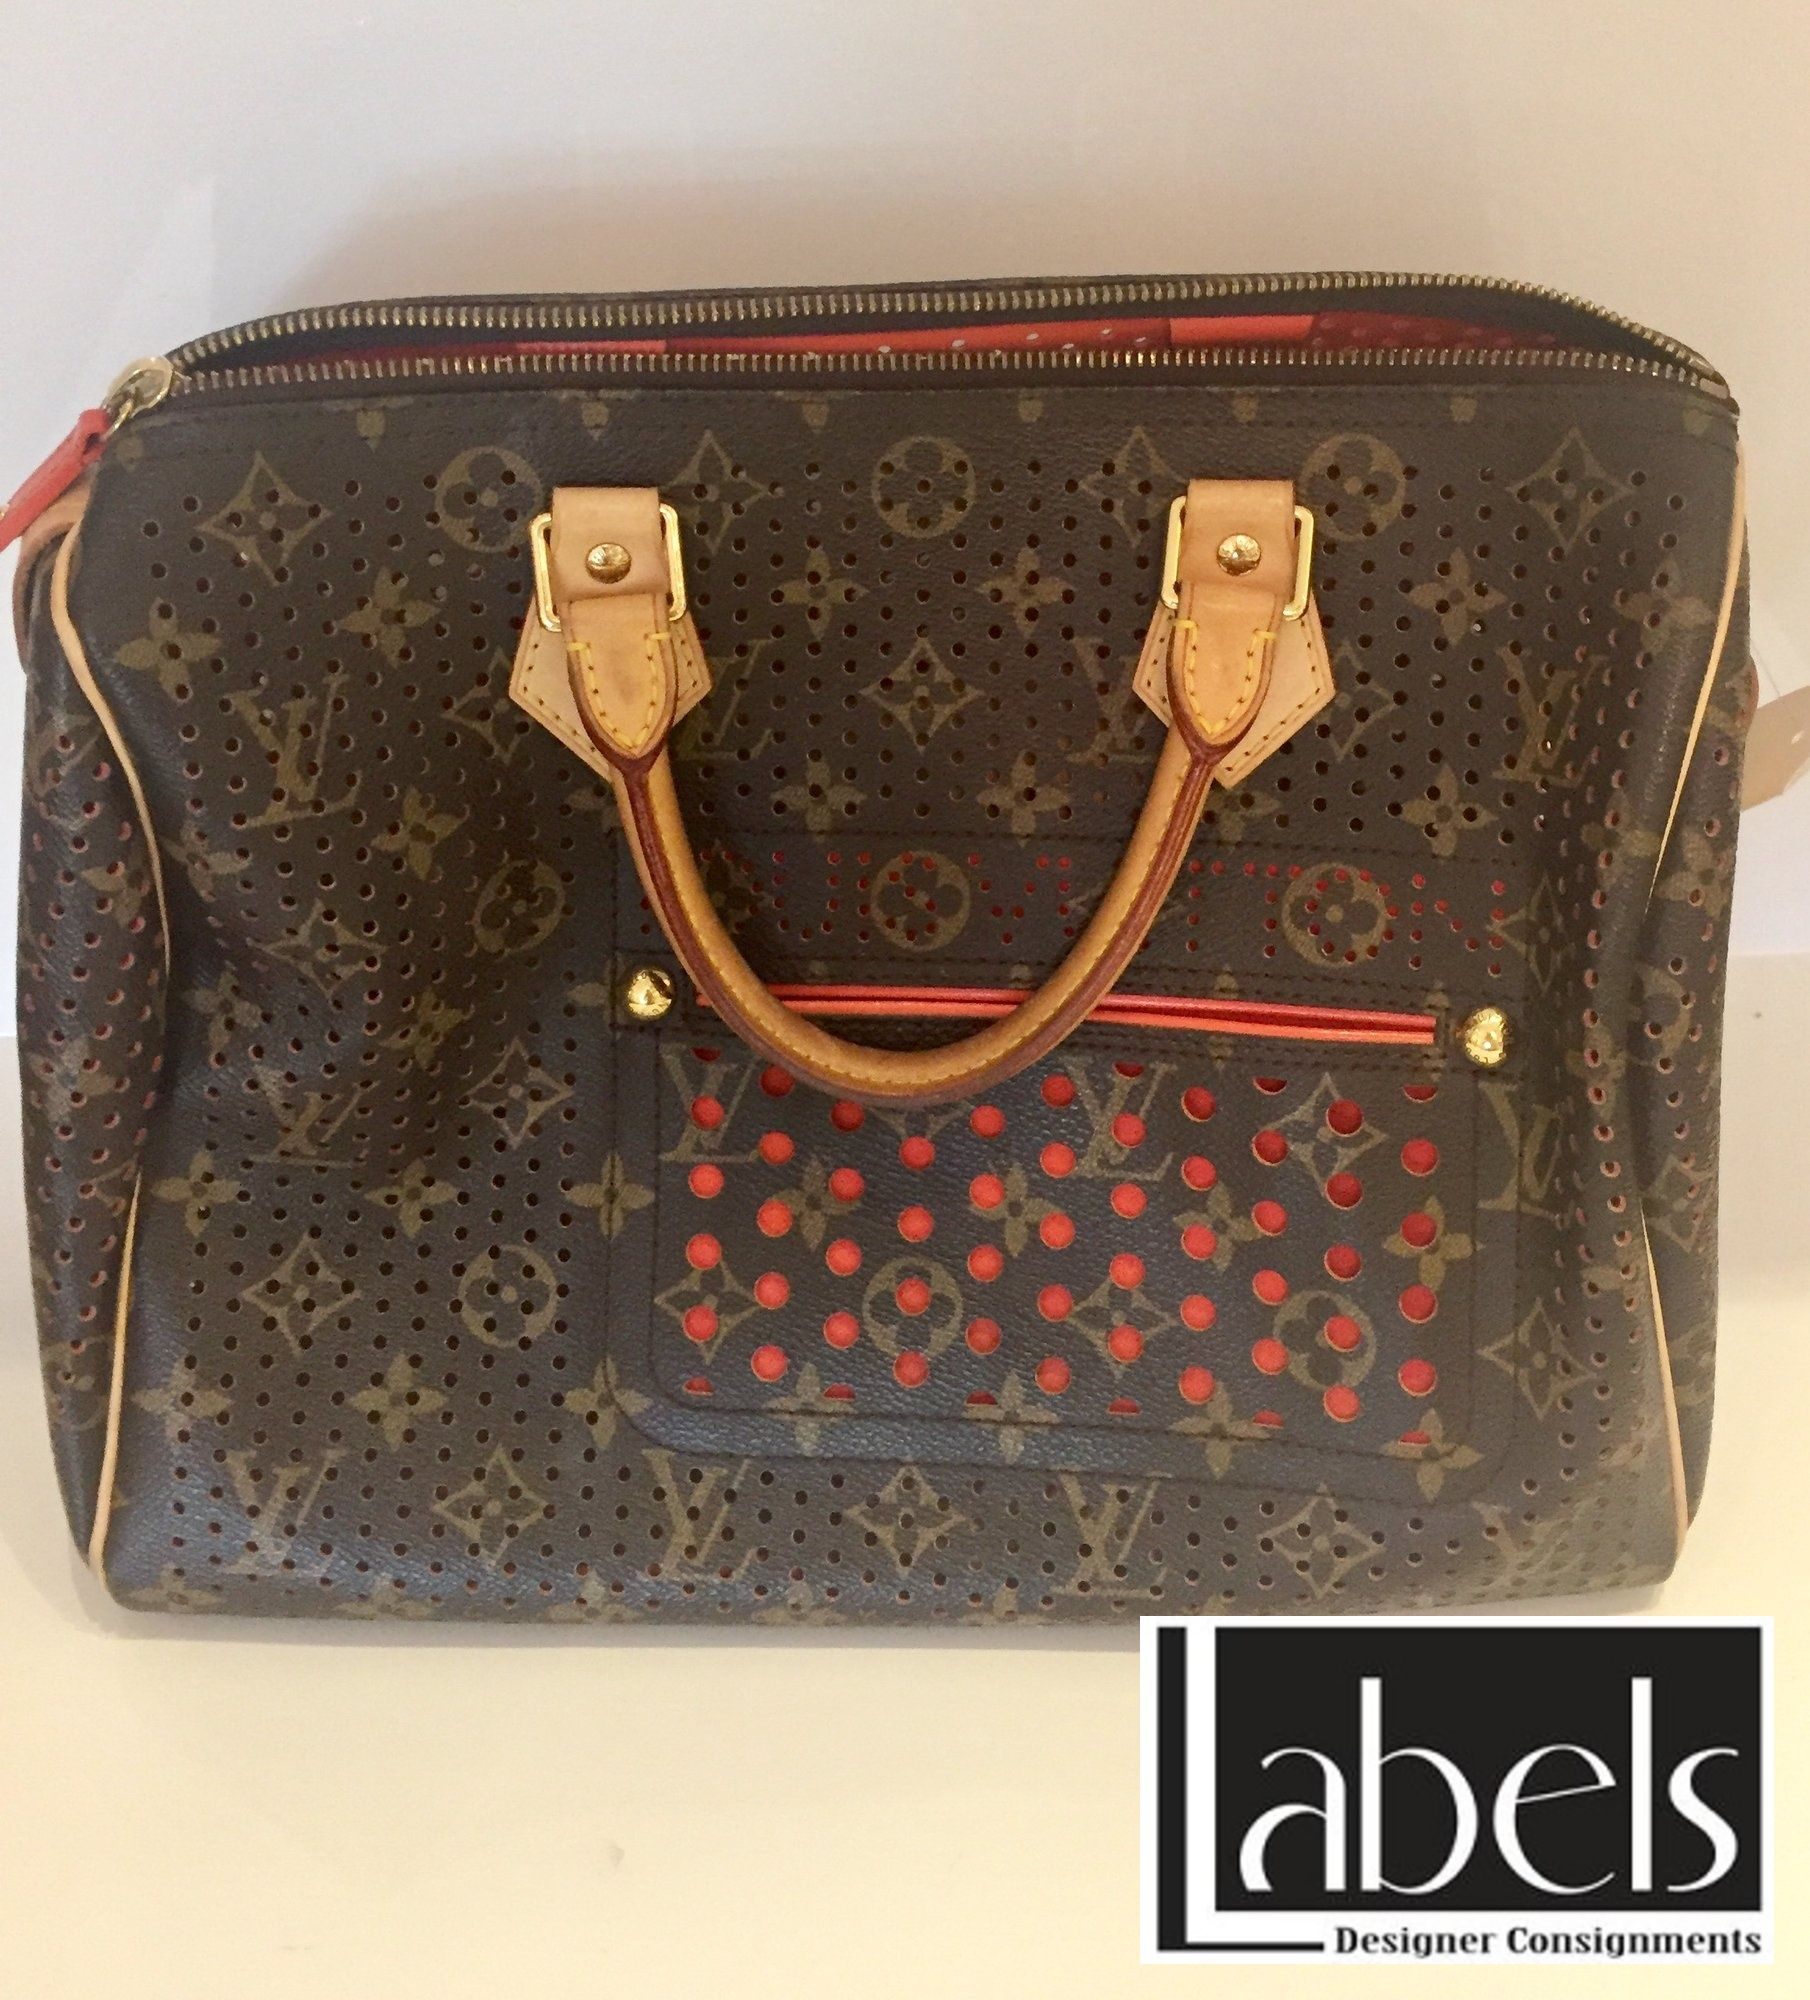 79323a5c6d94 Authentic Limited Edition Louis Vuitton Monogram Orange Perforated Speedy 30  Handbag in like new condition.